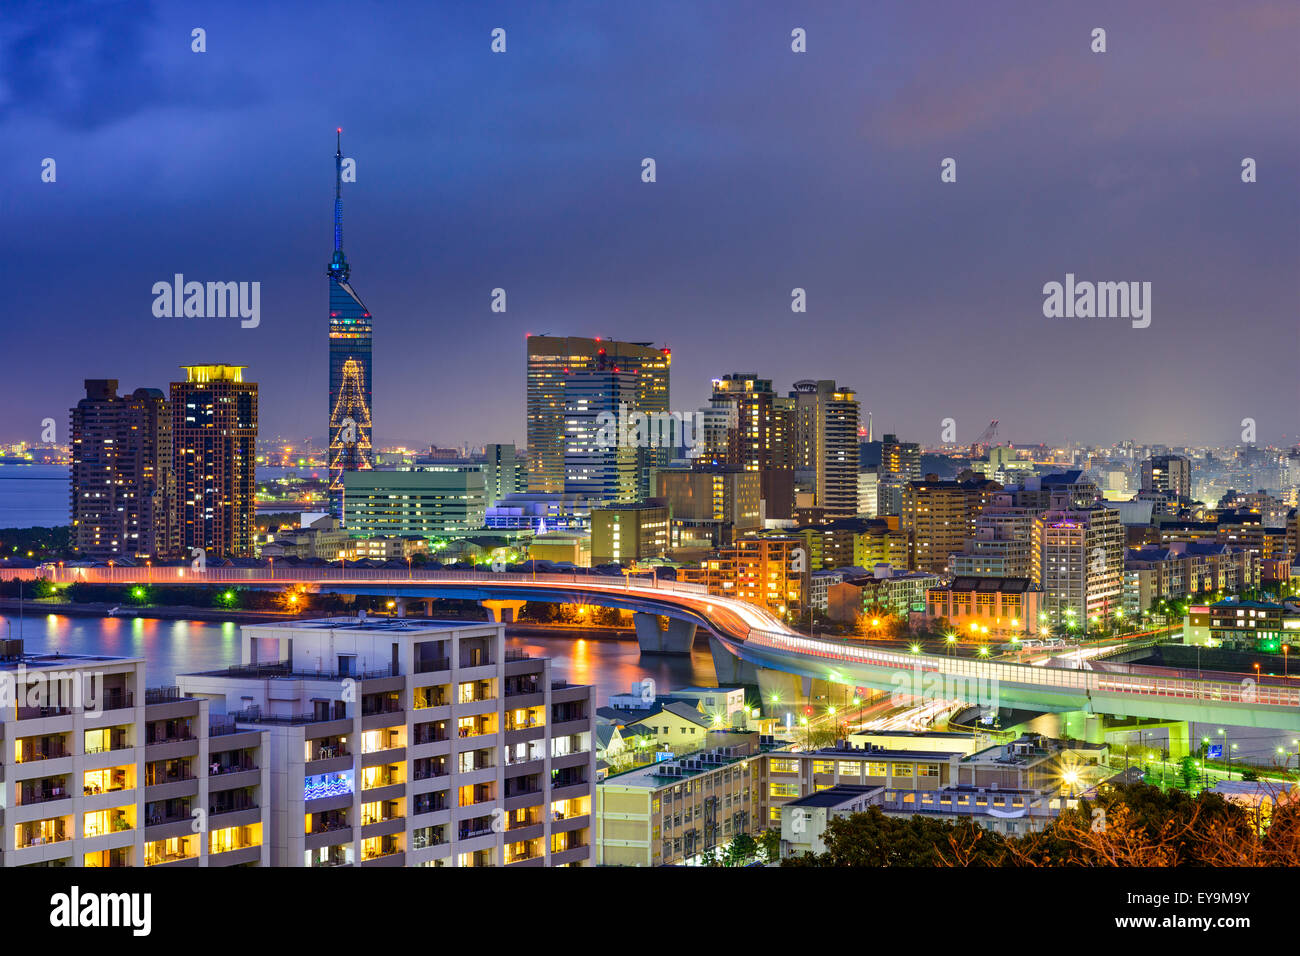 Fukuoka, Japan city skyline at night. - Stock Image